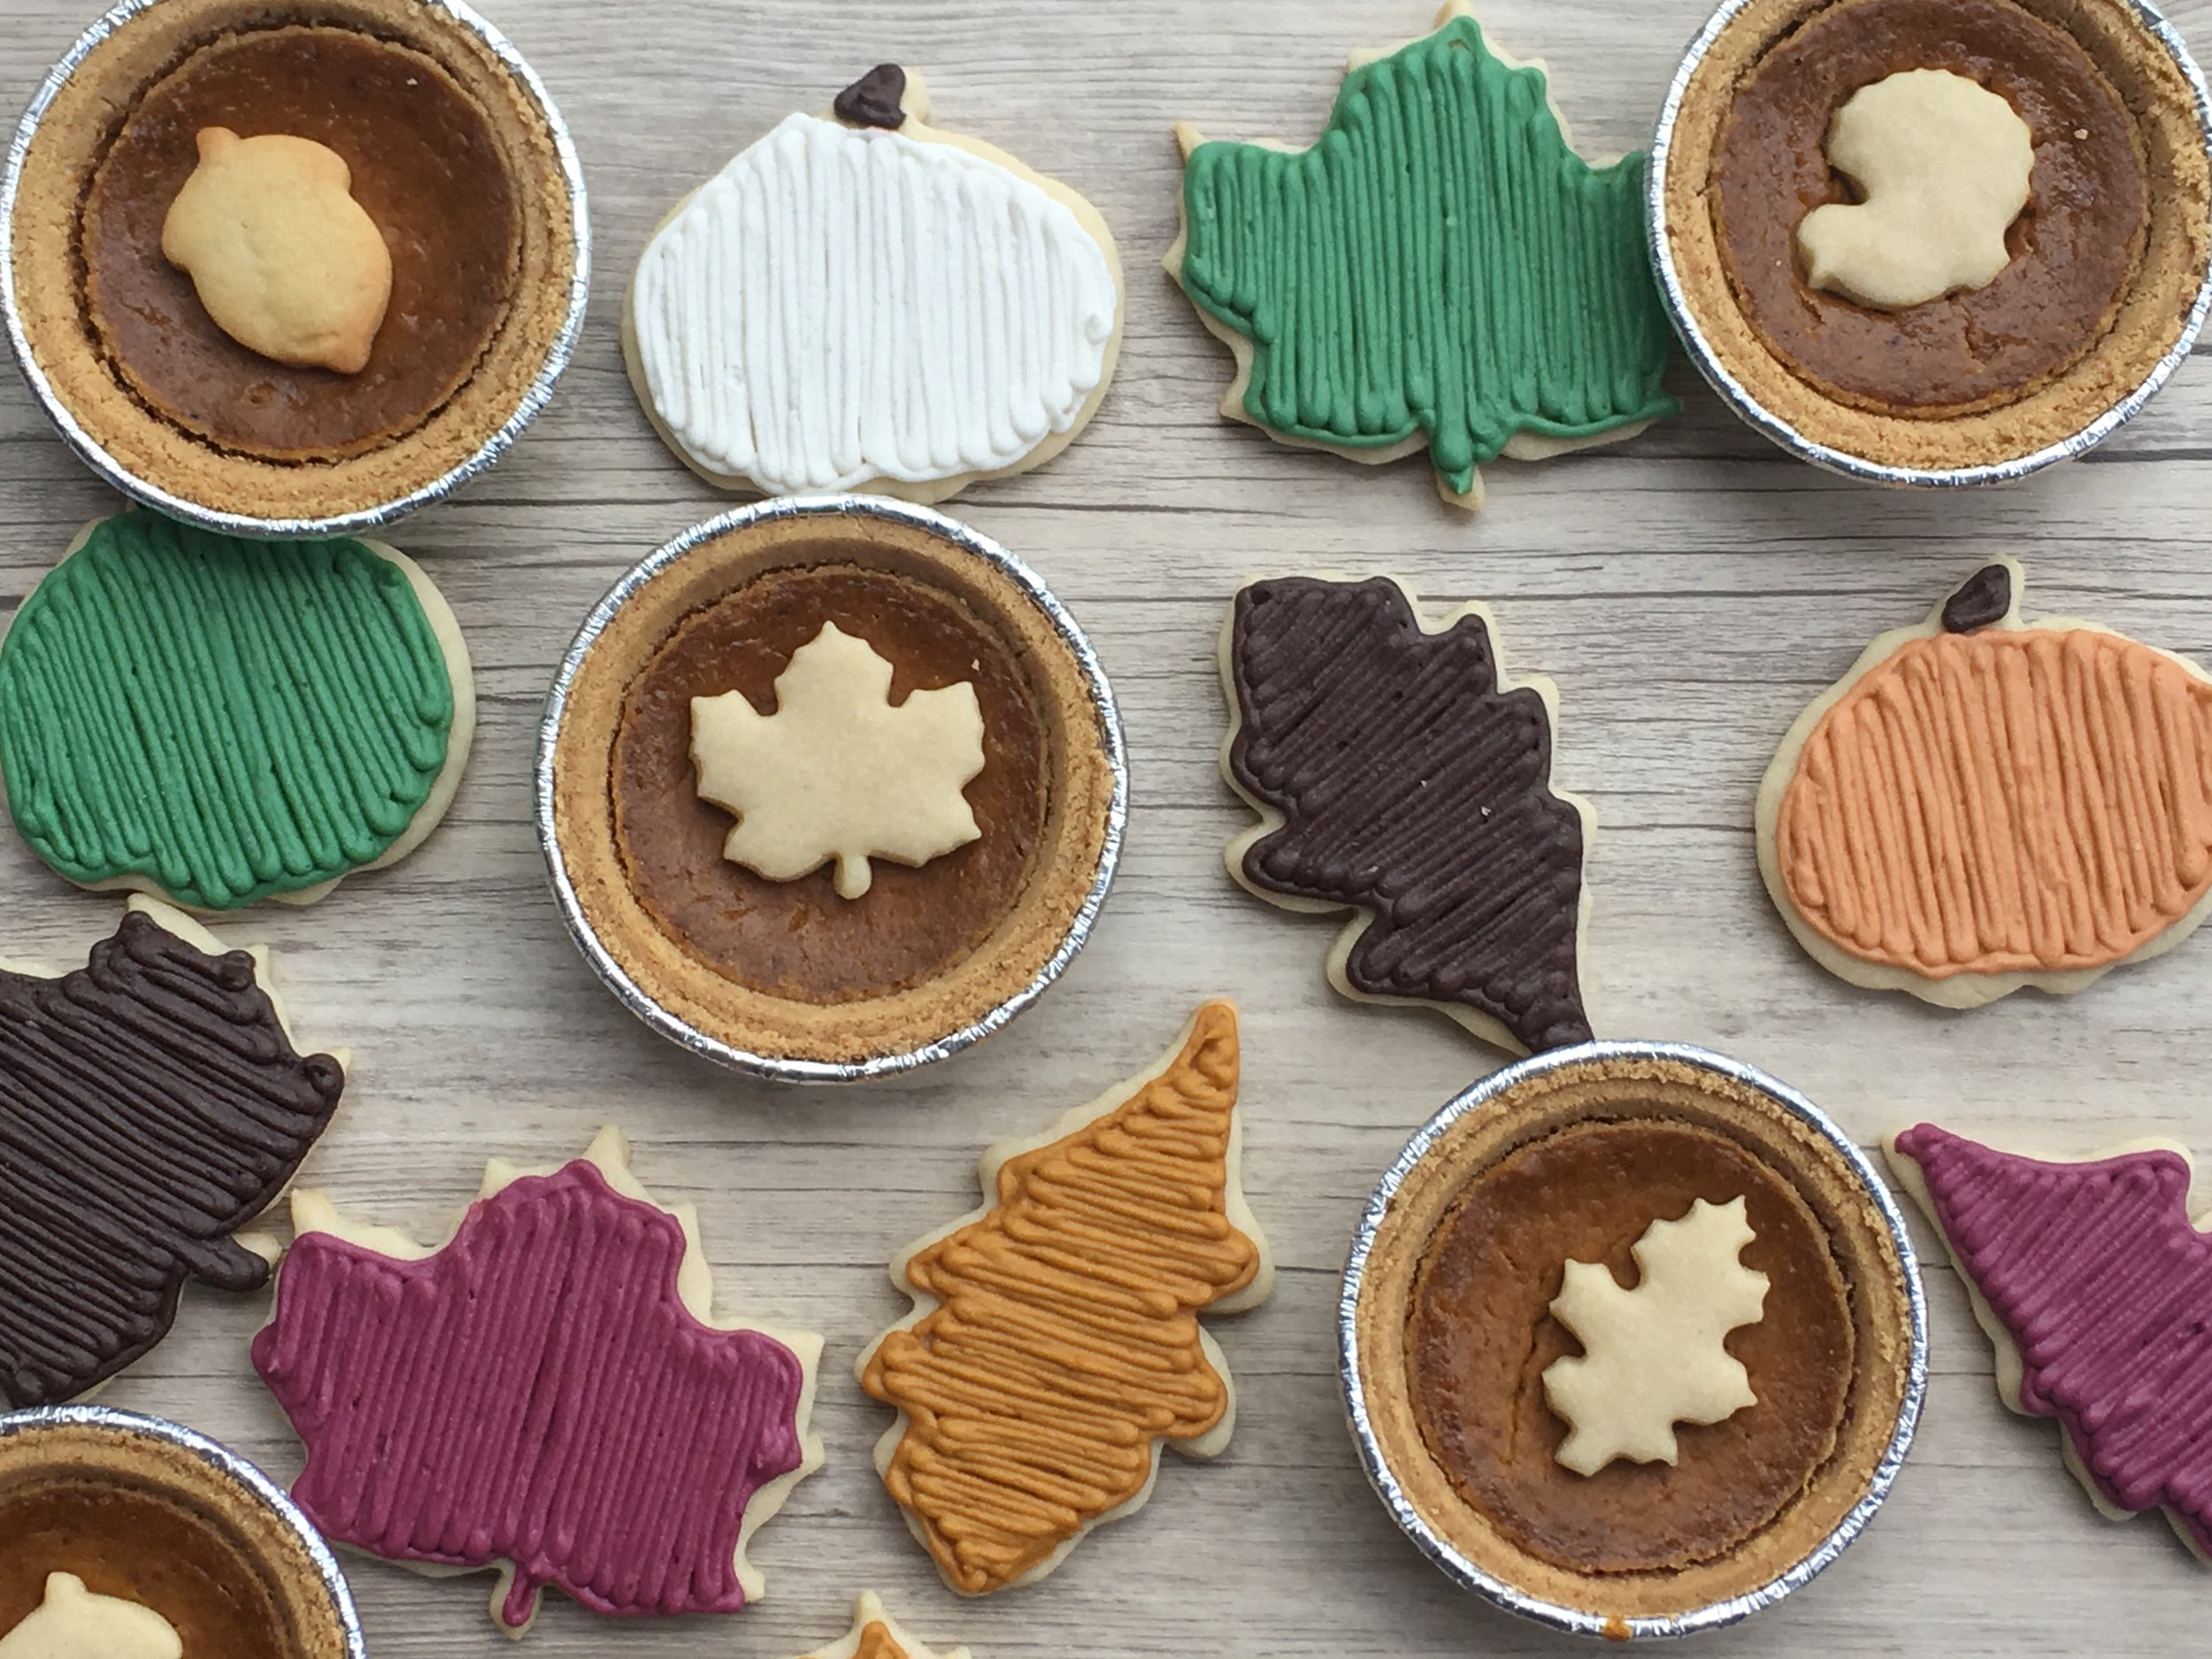 Thanksgiving Pies and Cookies.jpg